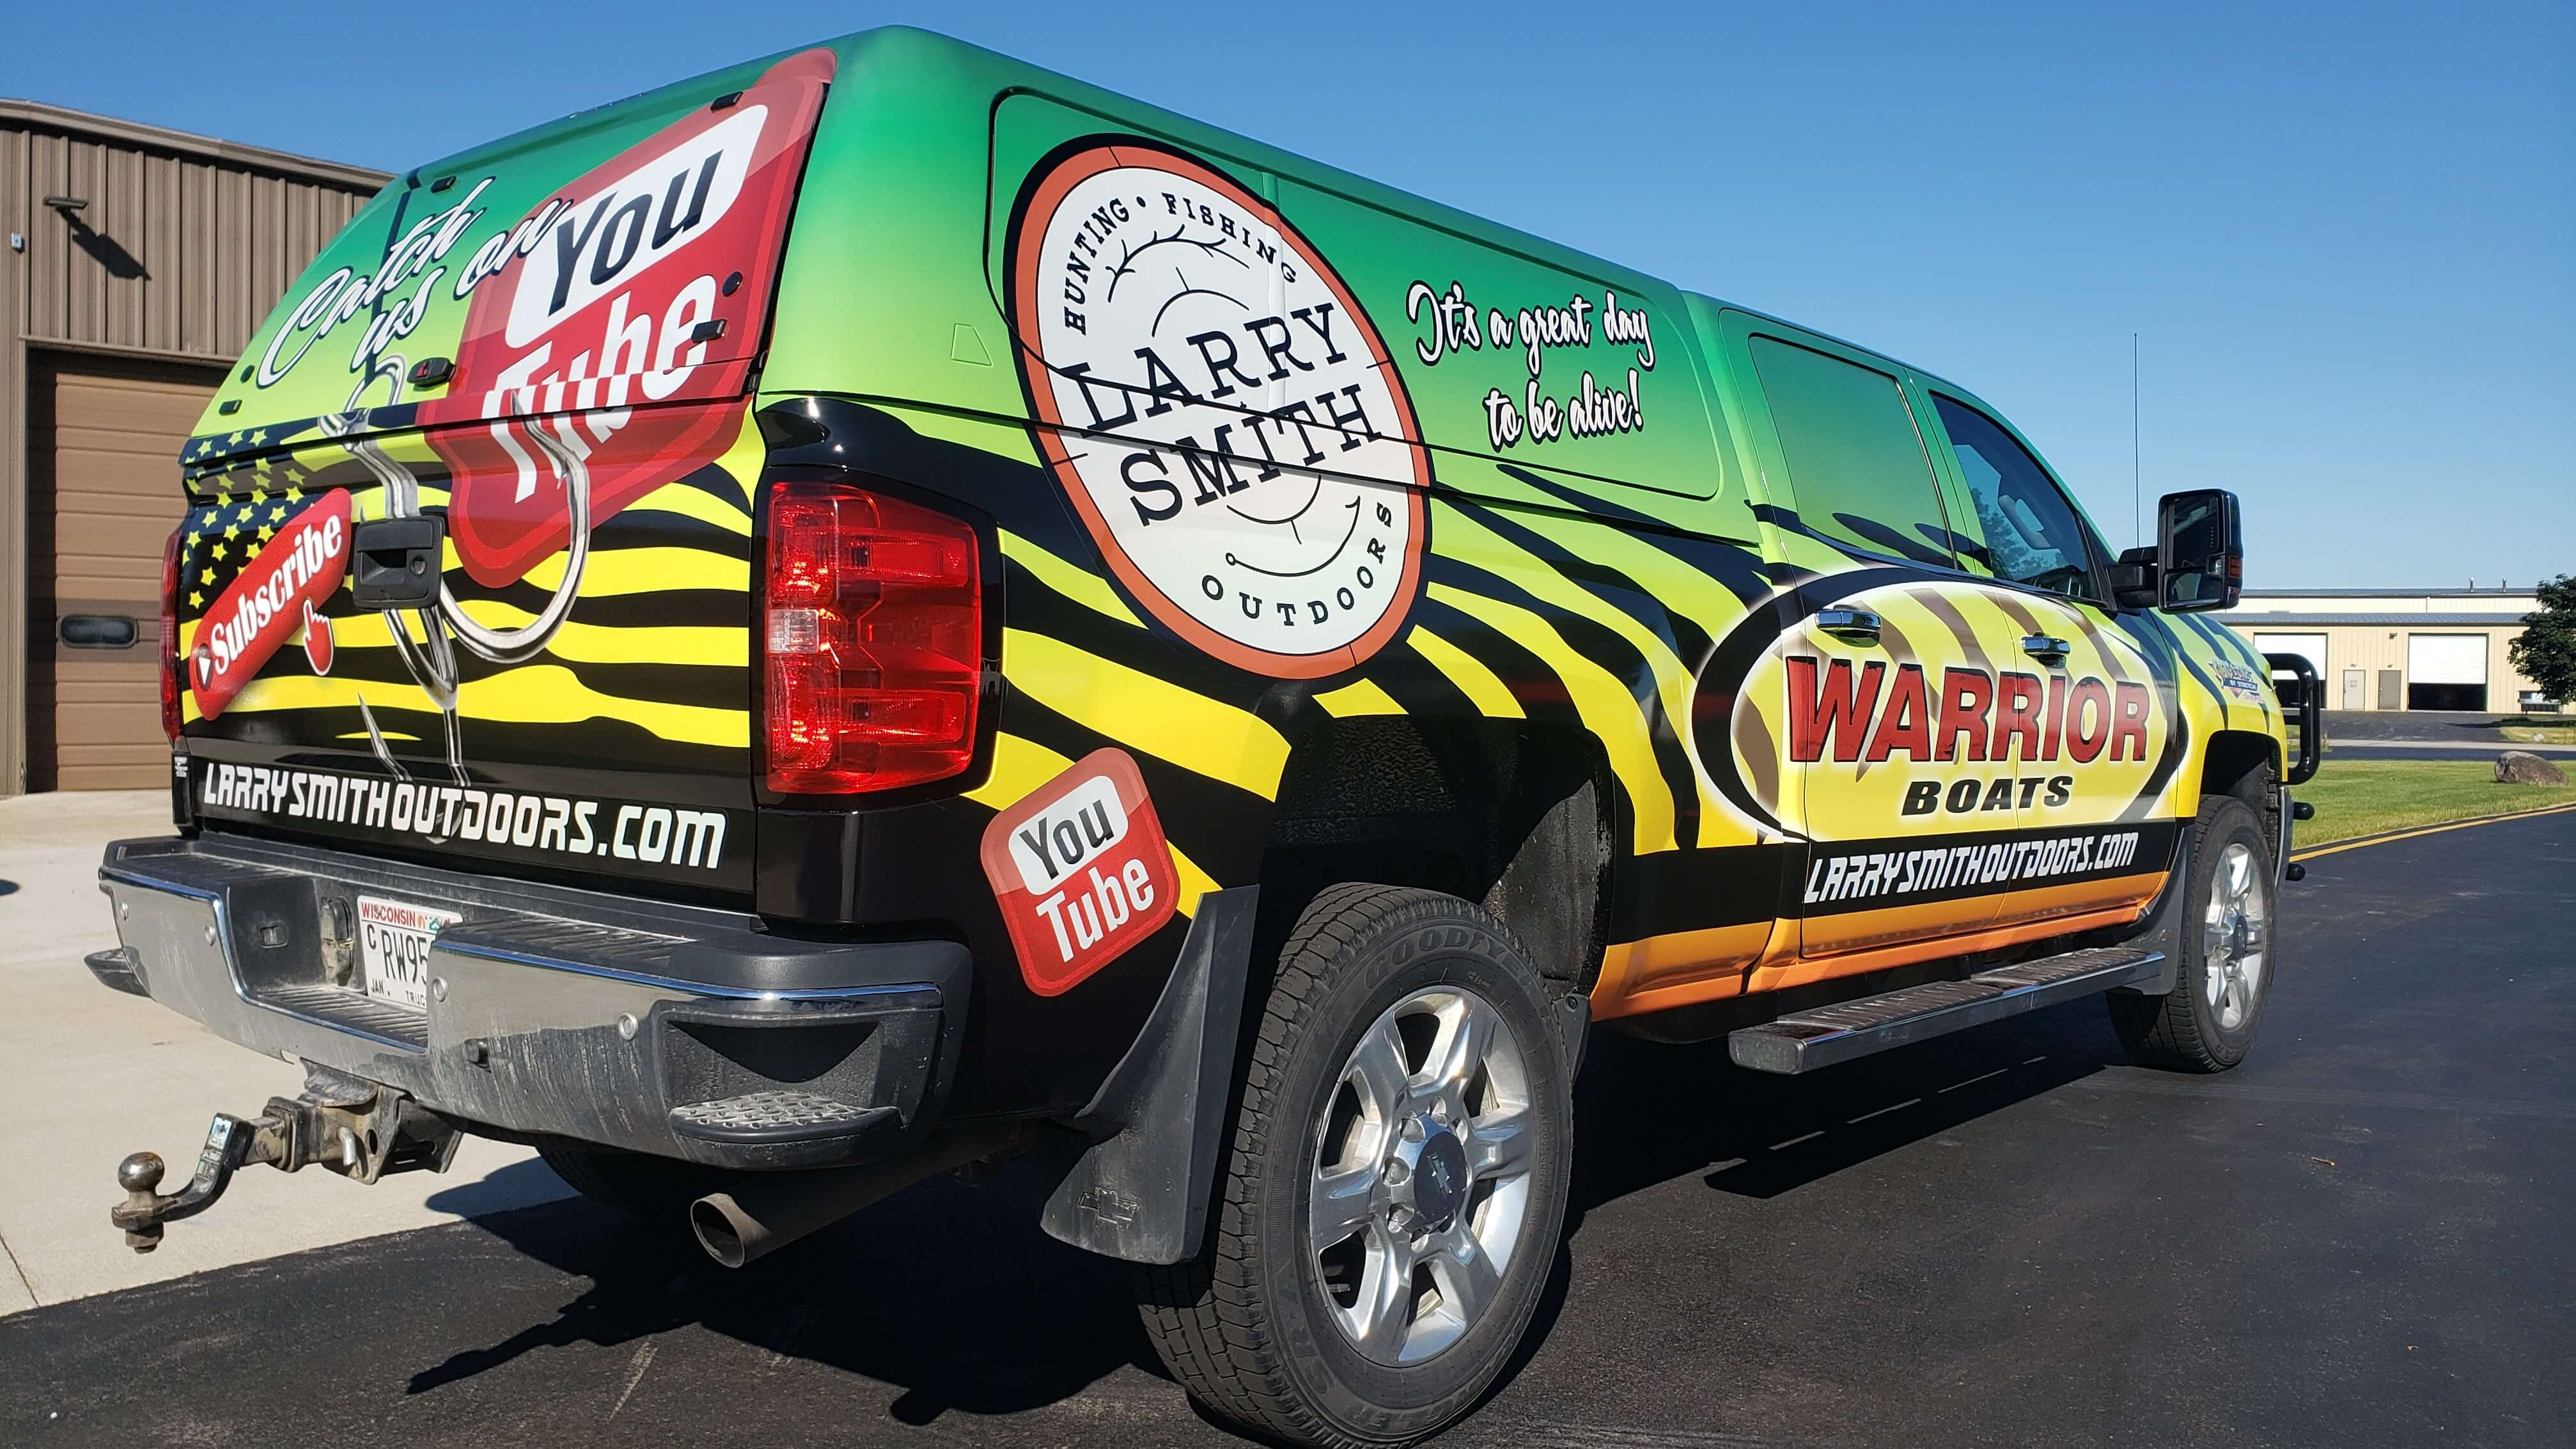 Larry Smith Outdoors Full Wrap with Custom Logos, Colors, and Boat Anchor on the Vehicle